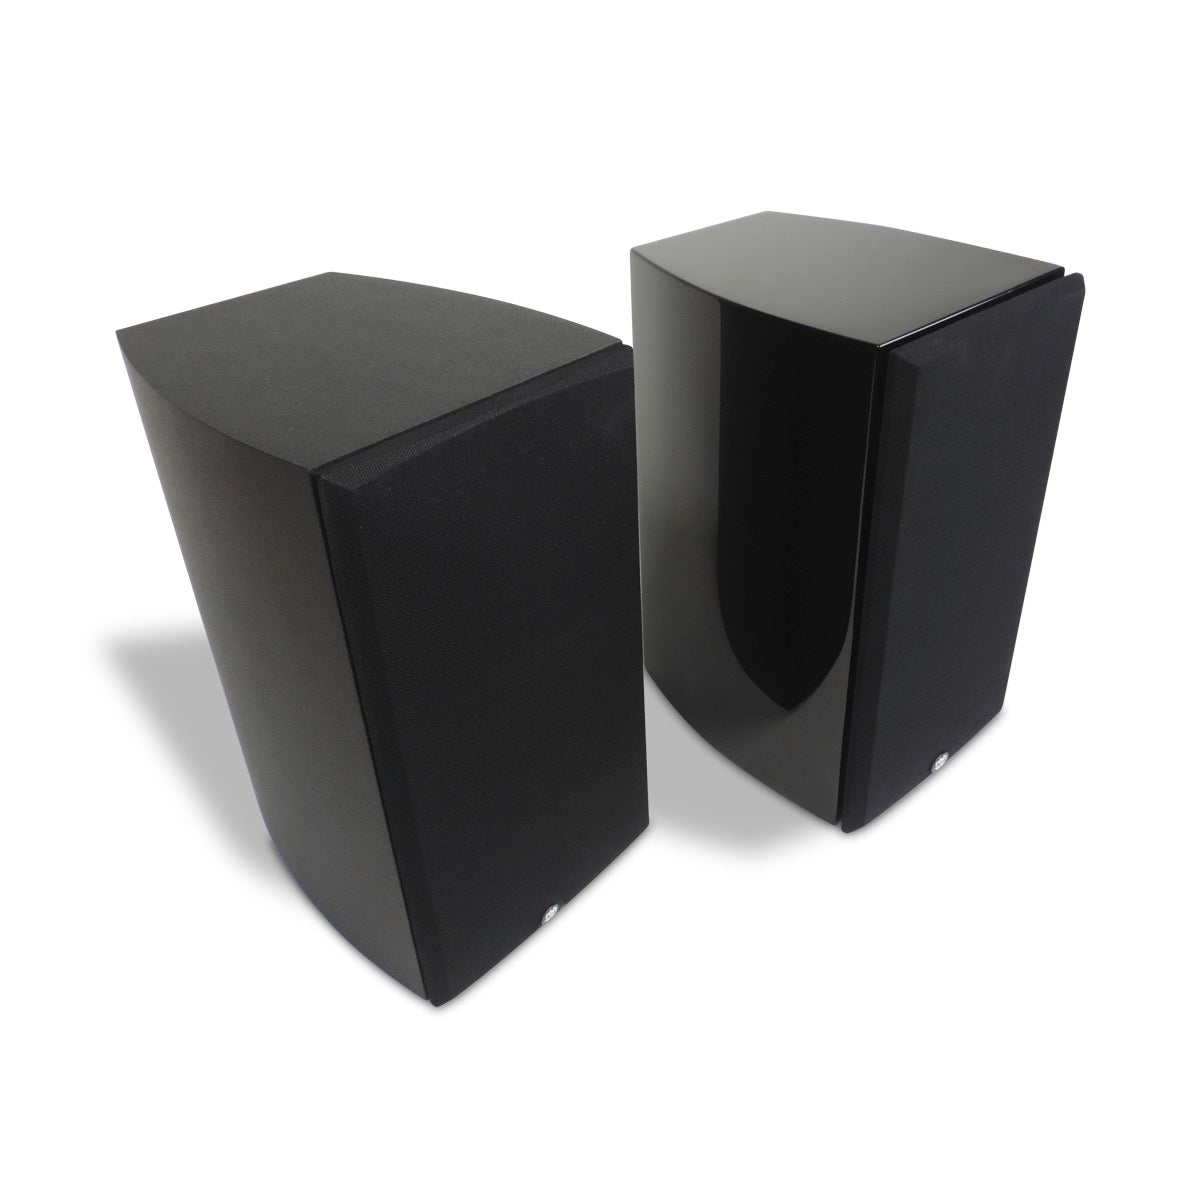 RBH Sound R-5 - Bookshelf Speaker - Pair, RBH Sound, Bookshelf Speaker - AVStore.in